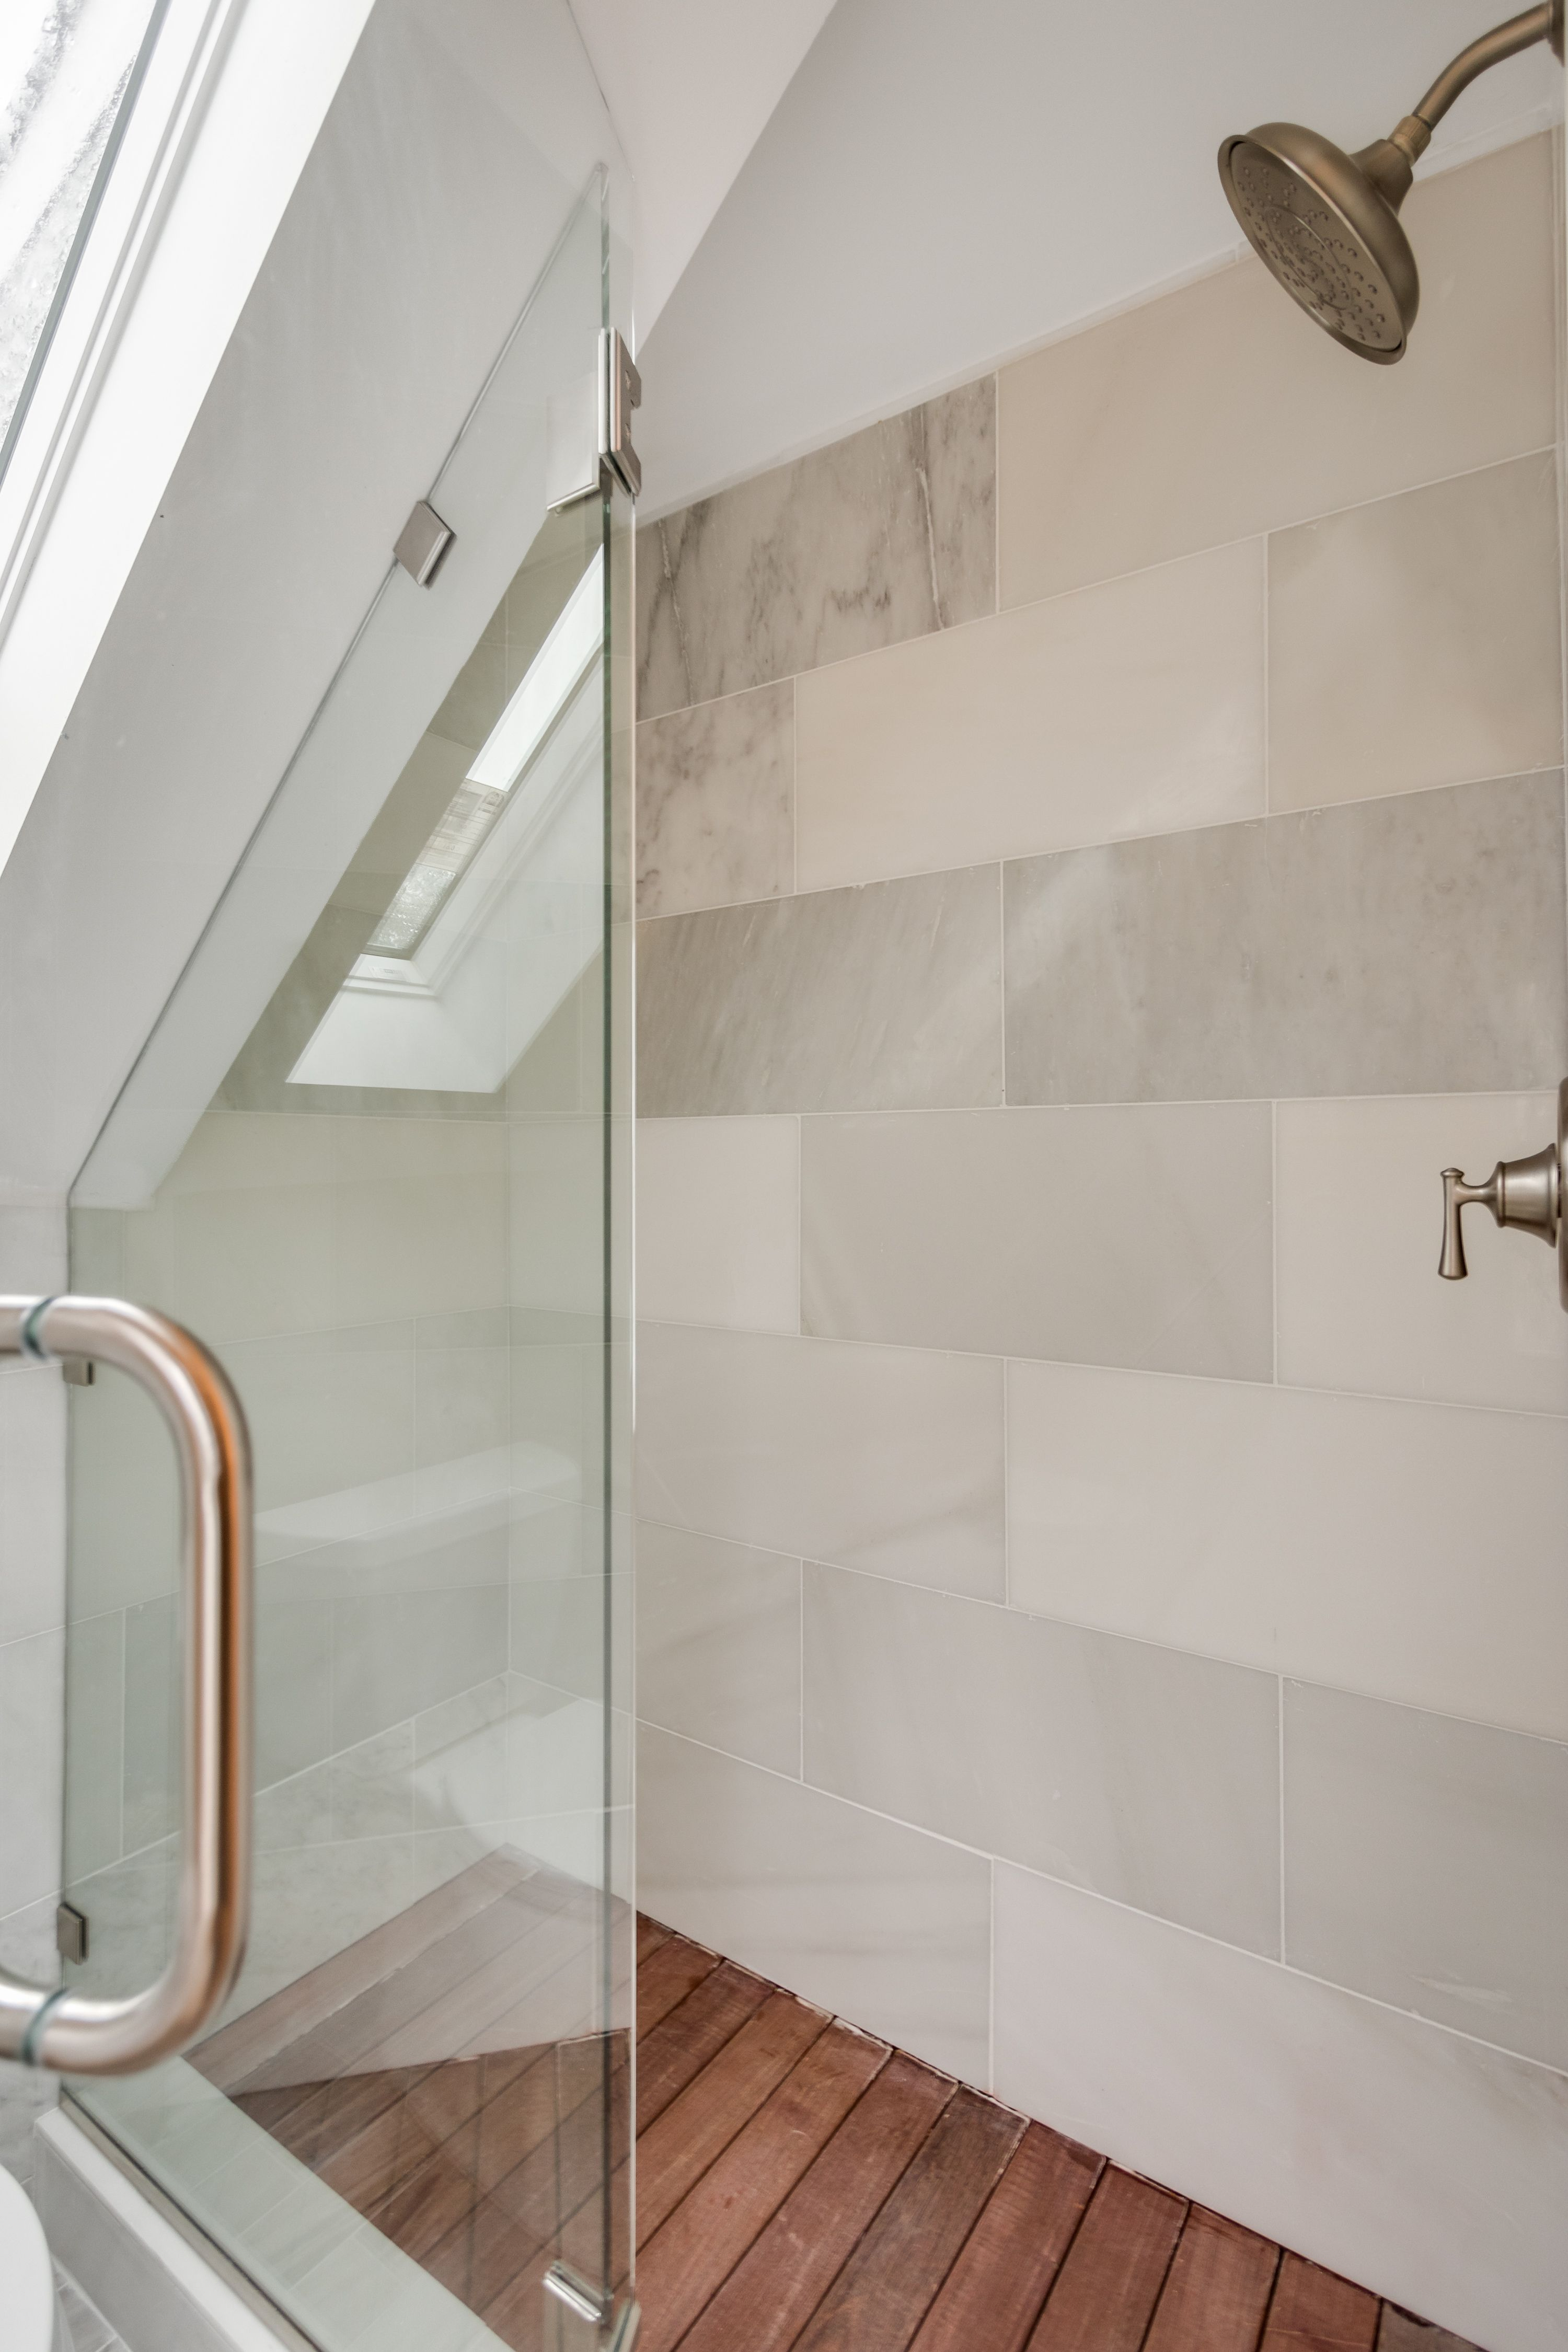 Incroyable Marble Shower Surround With IPE Wood Floor. This Combination Creates A  Spa Like Feel #armordevelopmenthomes